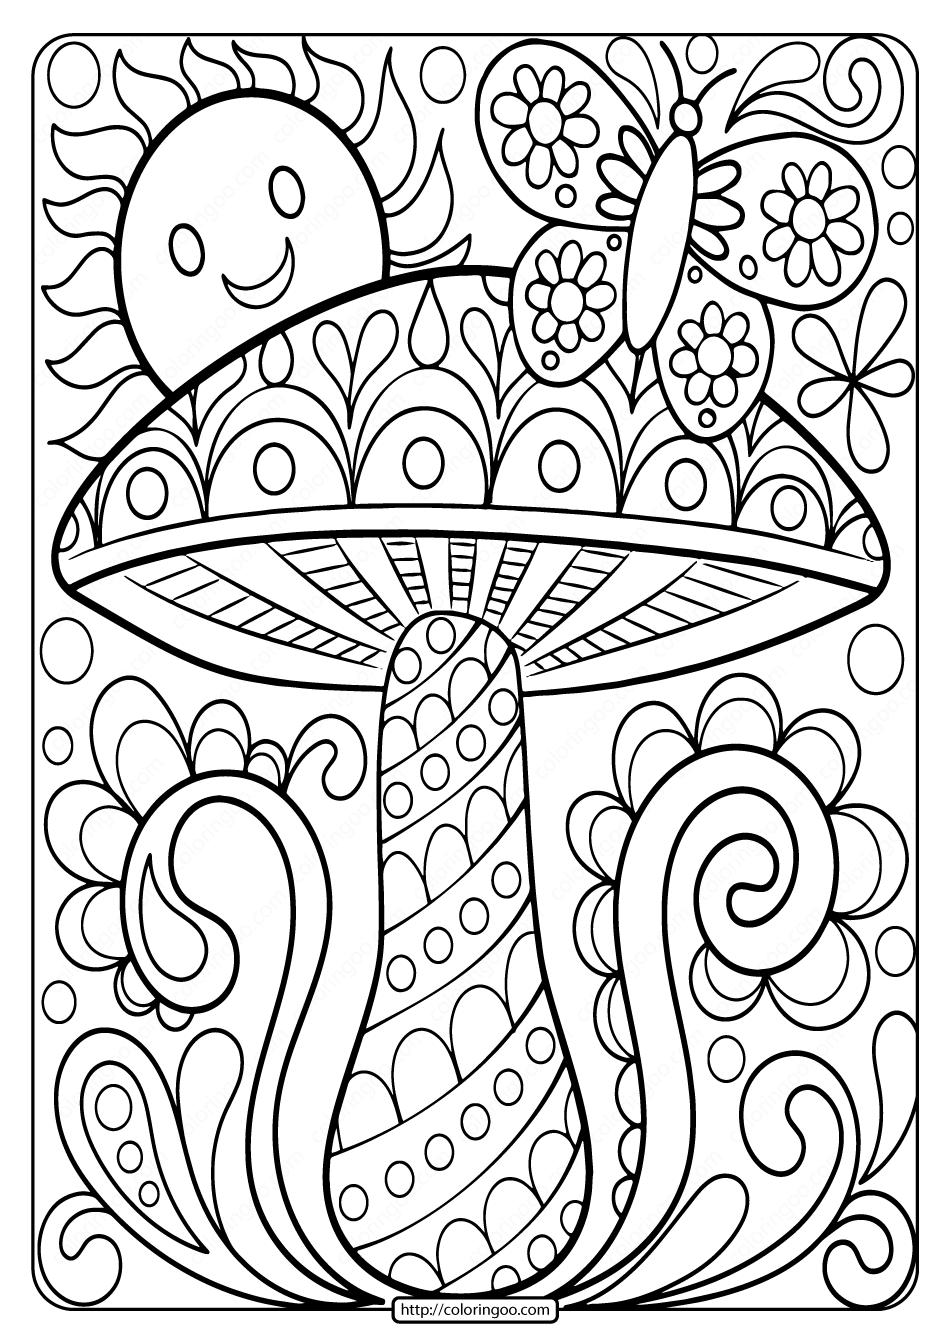 coloring pages of free printable mushroom adult coloring page pages coloring of